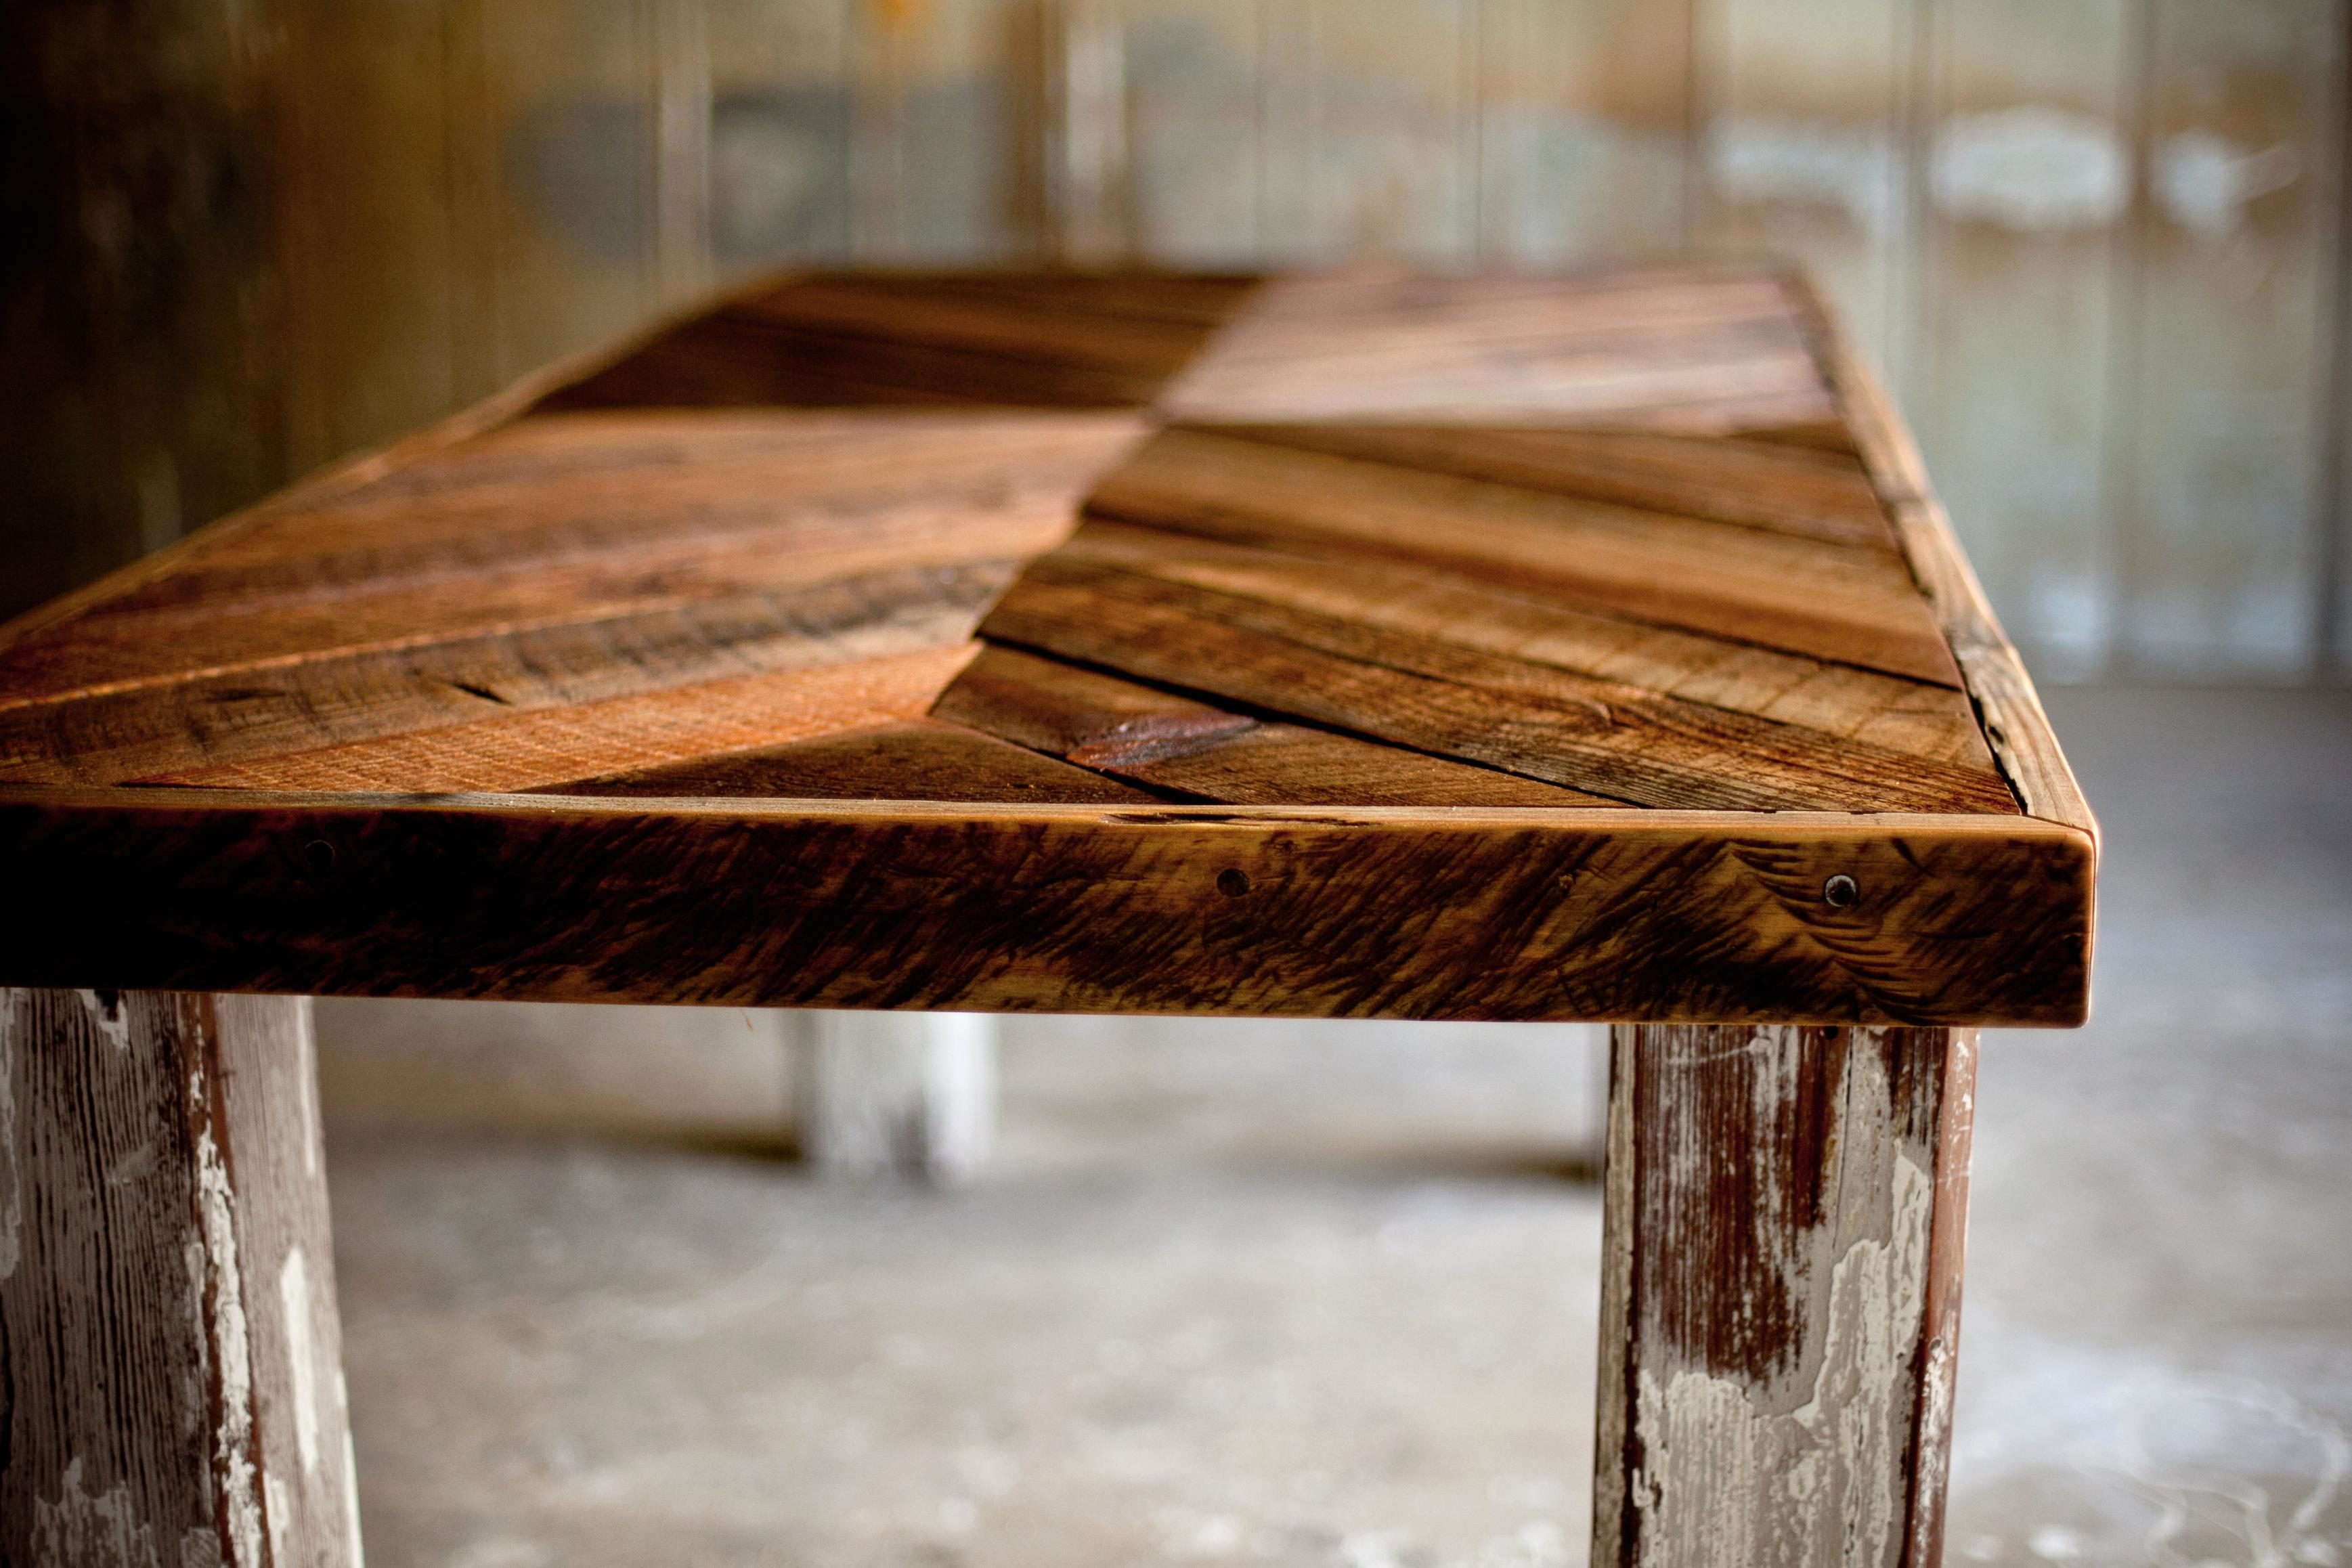 handmade furniture wood, wooden, old, desk, furniture, handmade GJPKJYR